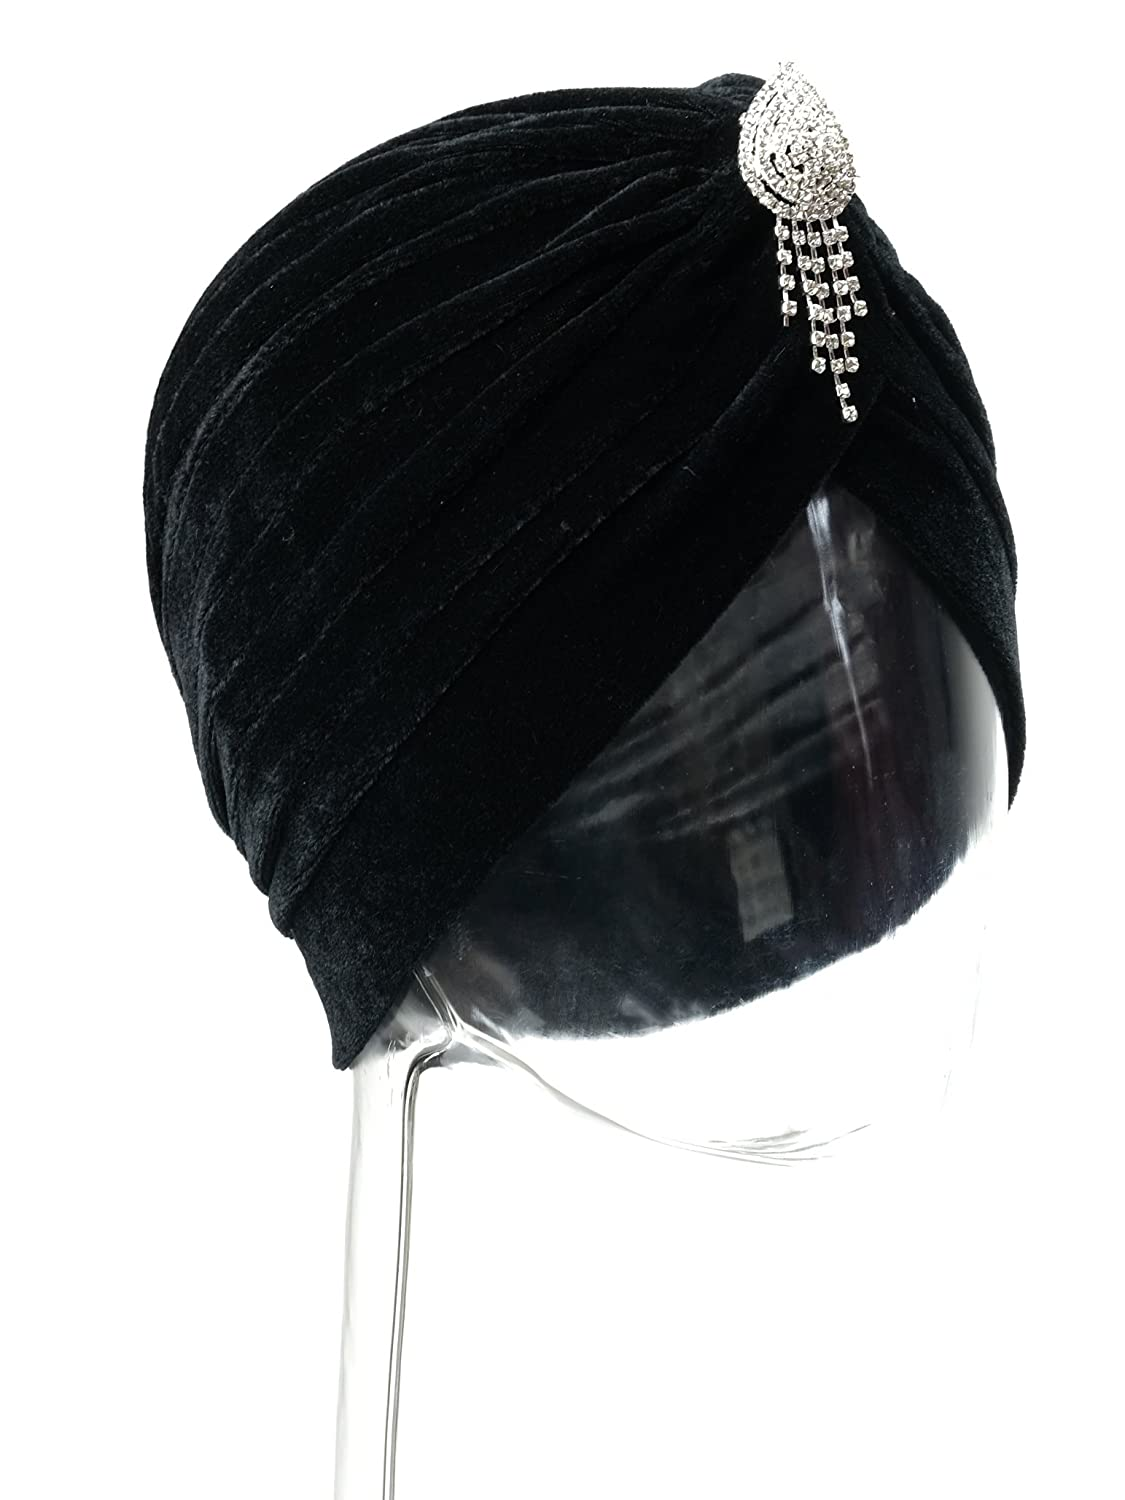 1930s Style Hats | Buy 30s Ladies Hats Vintage 20s 30s 50s Twist Pleated Velvet Knotted Stretch Turban Hat Head Wrap $10.29 AT vintagedancer.com